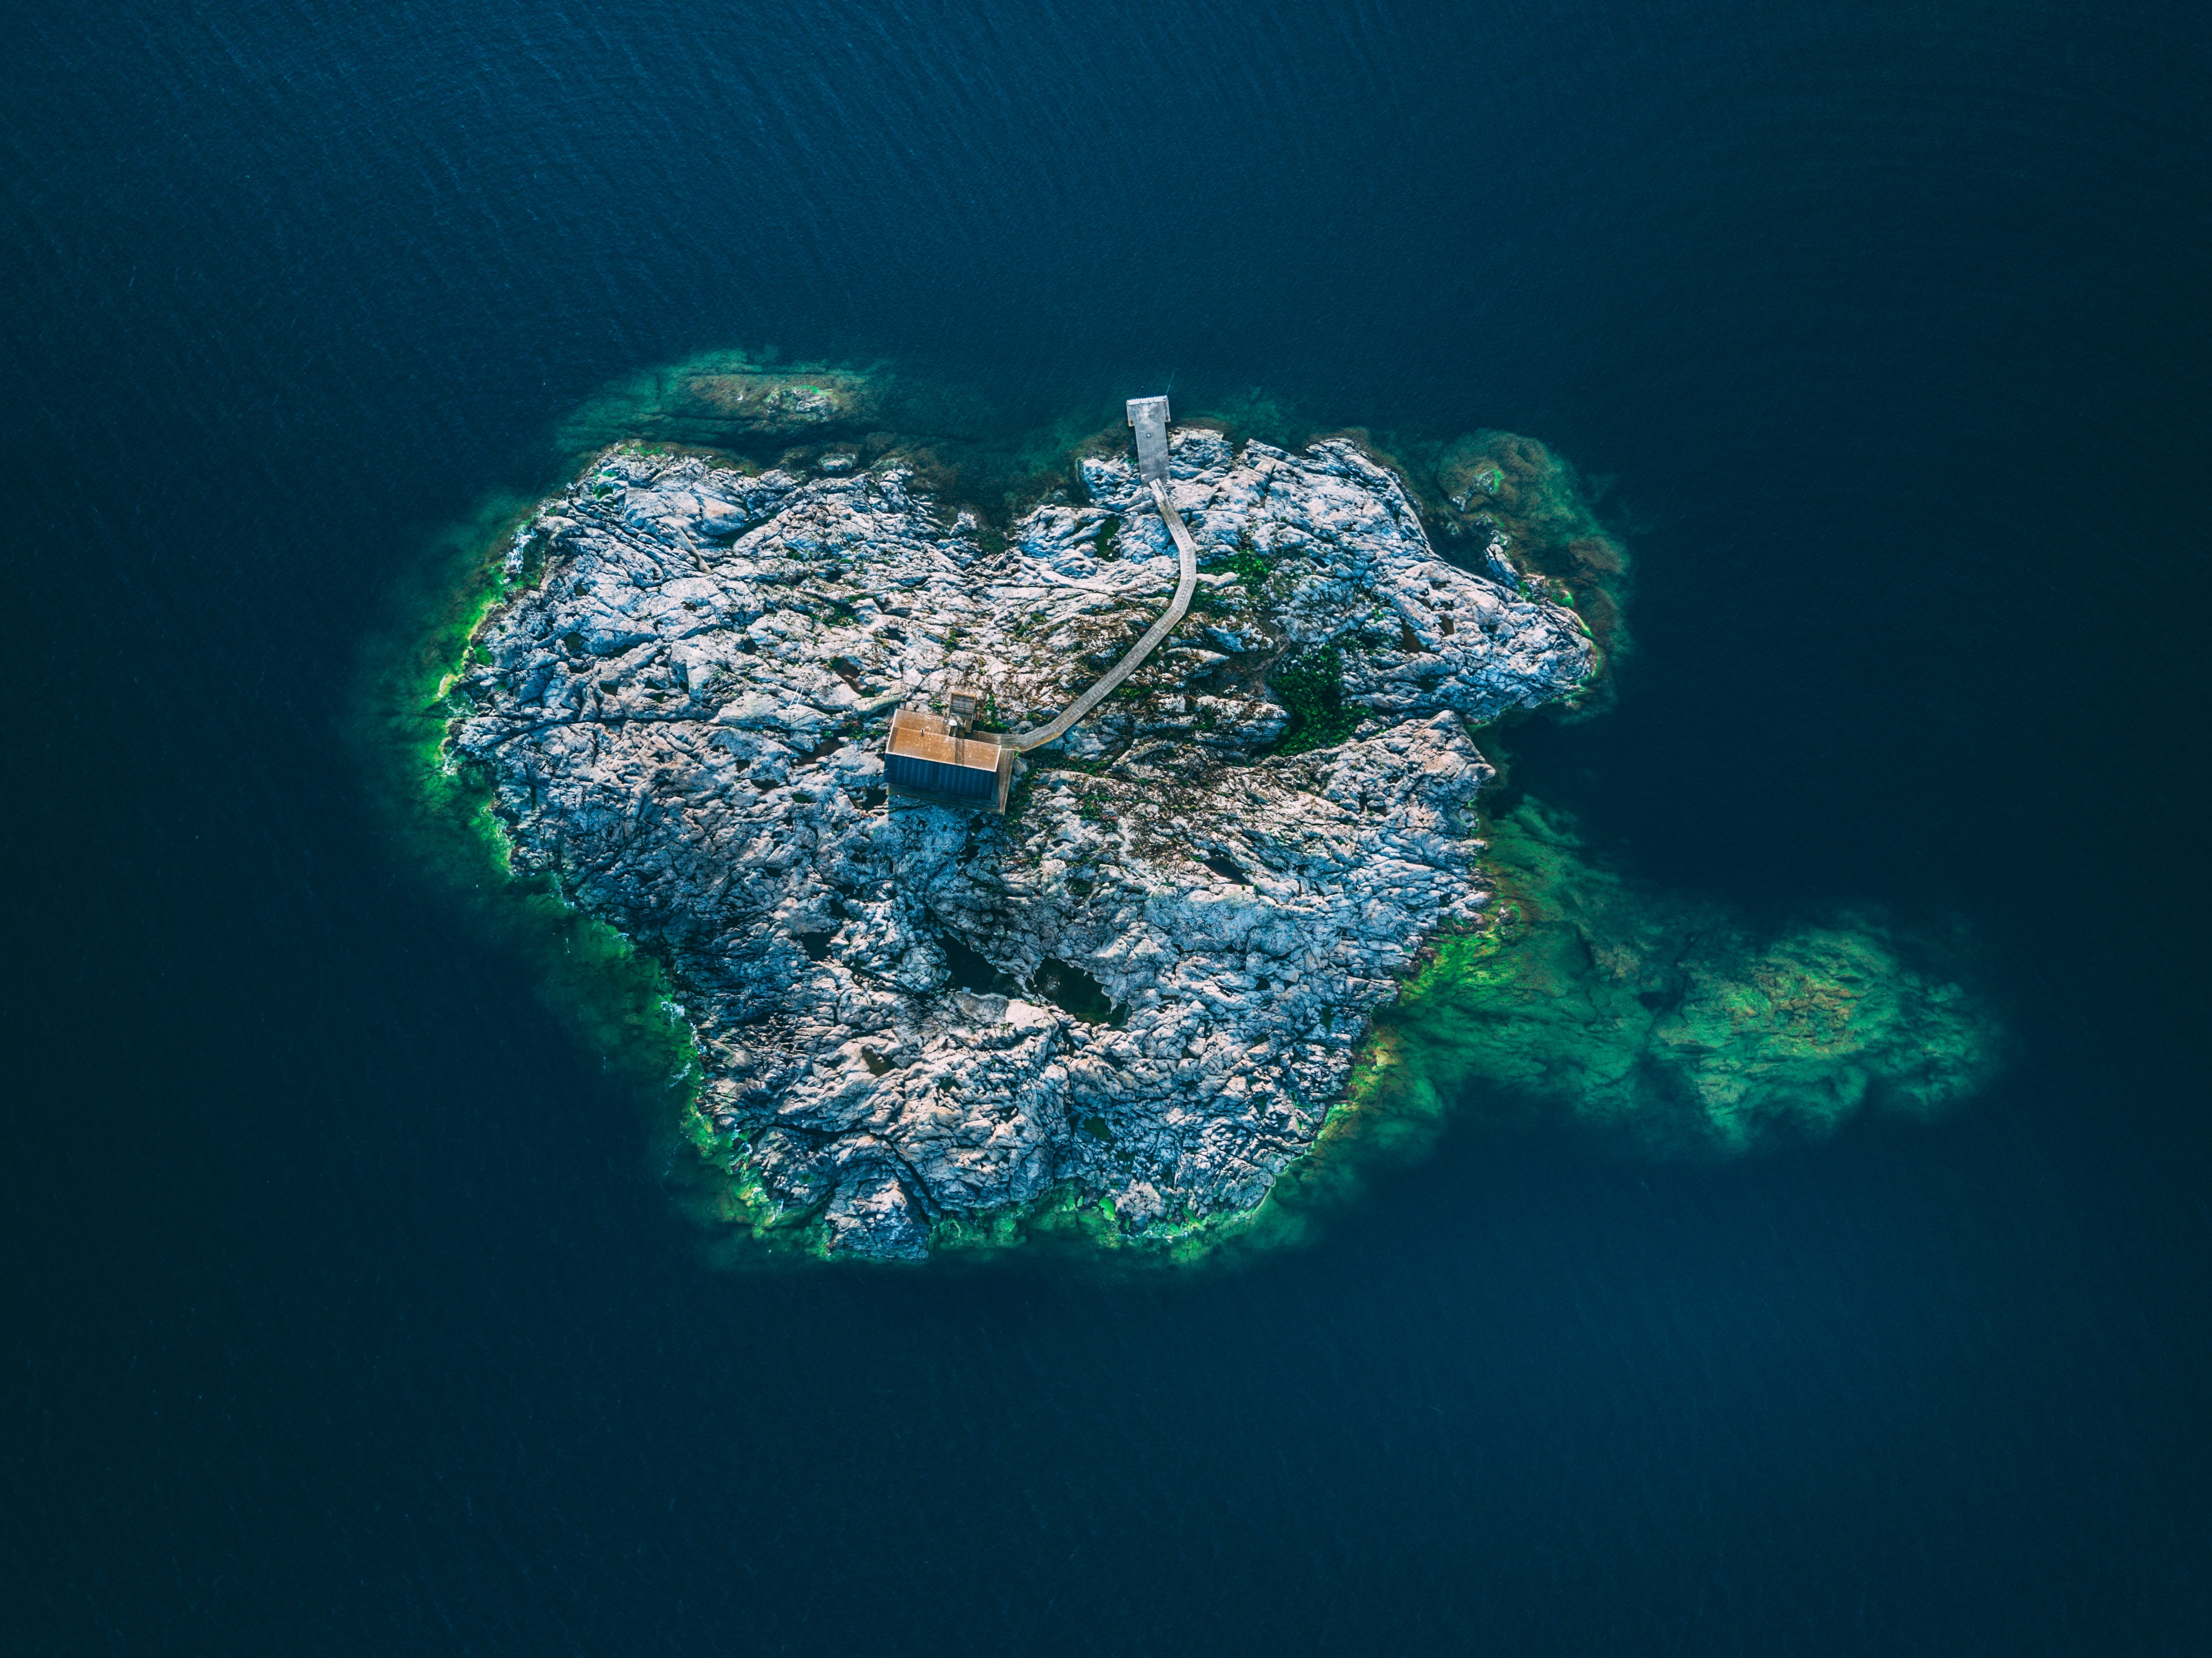 A drone shot of a small building in the middle of a rocky island